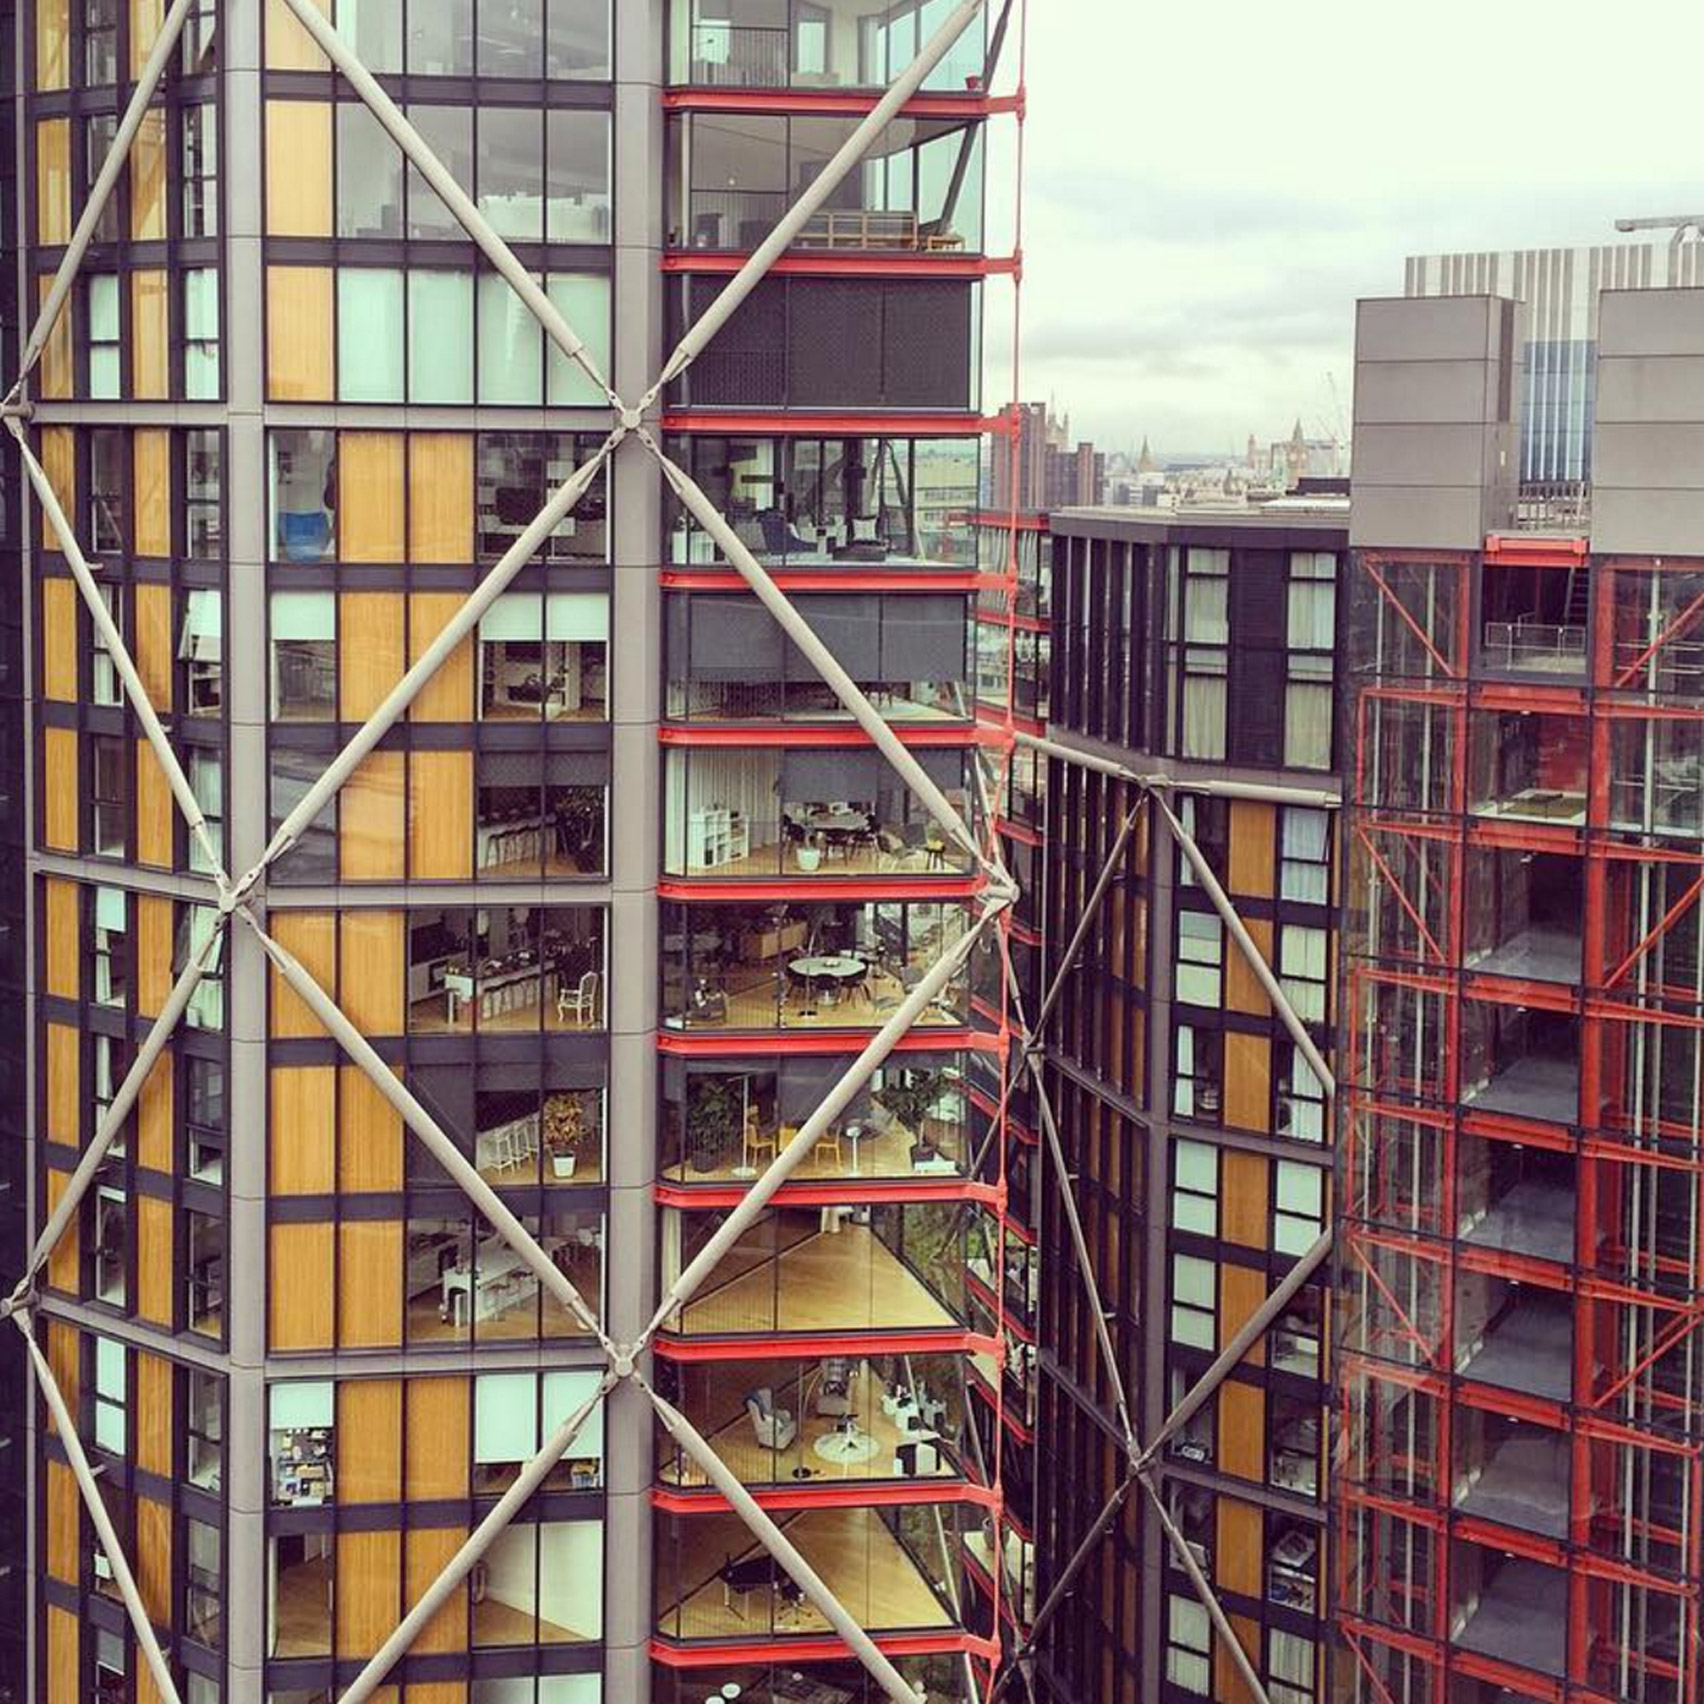 lowest price 7b358 6367e Tate Modern visitors accused of spying on Neo Bankside residents